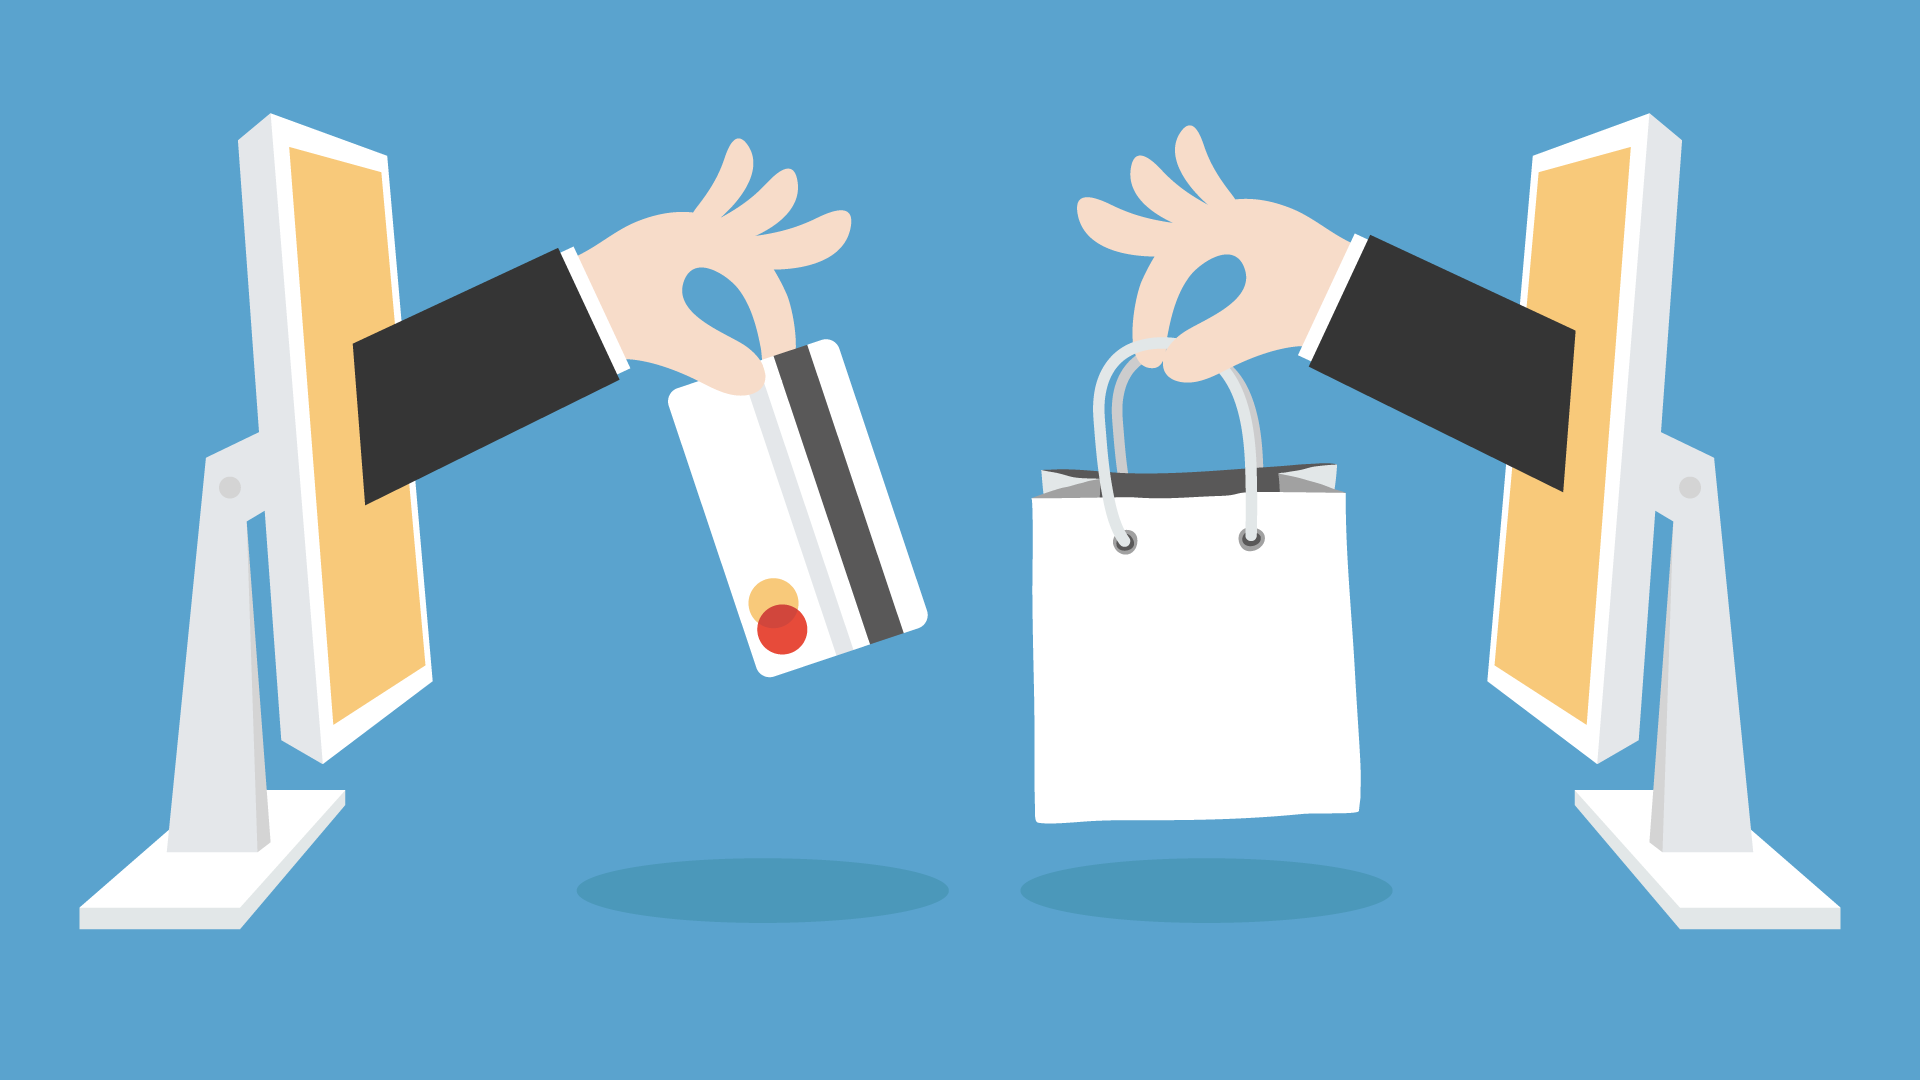 What Are The Benefits Of Using Online Shopping?